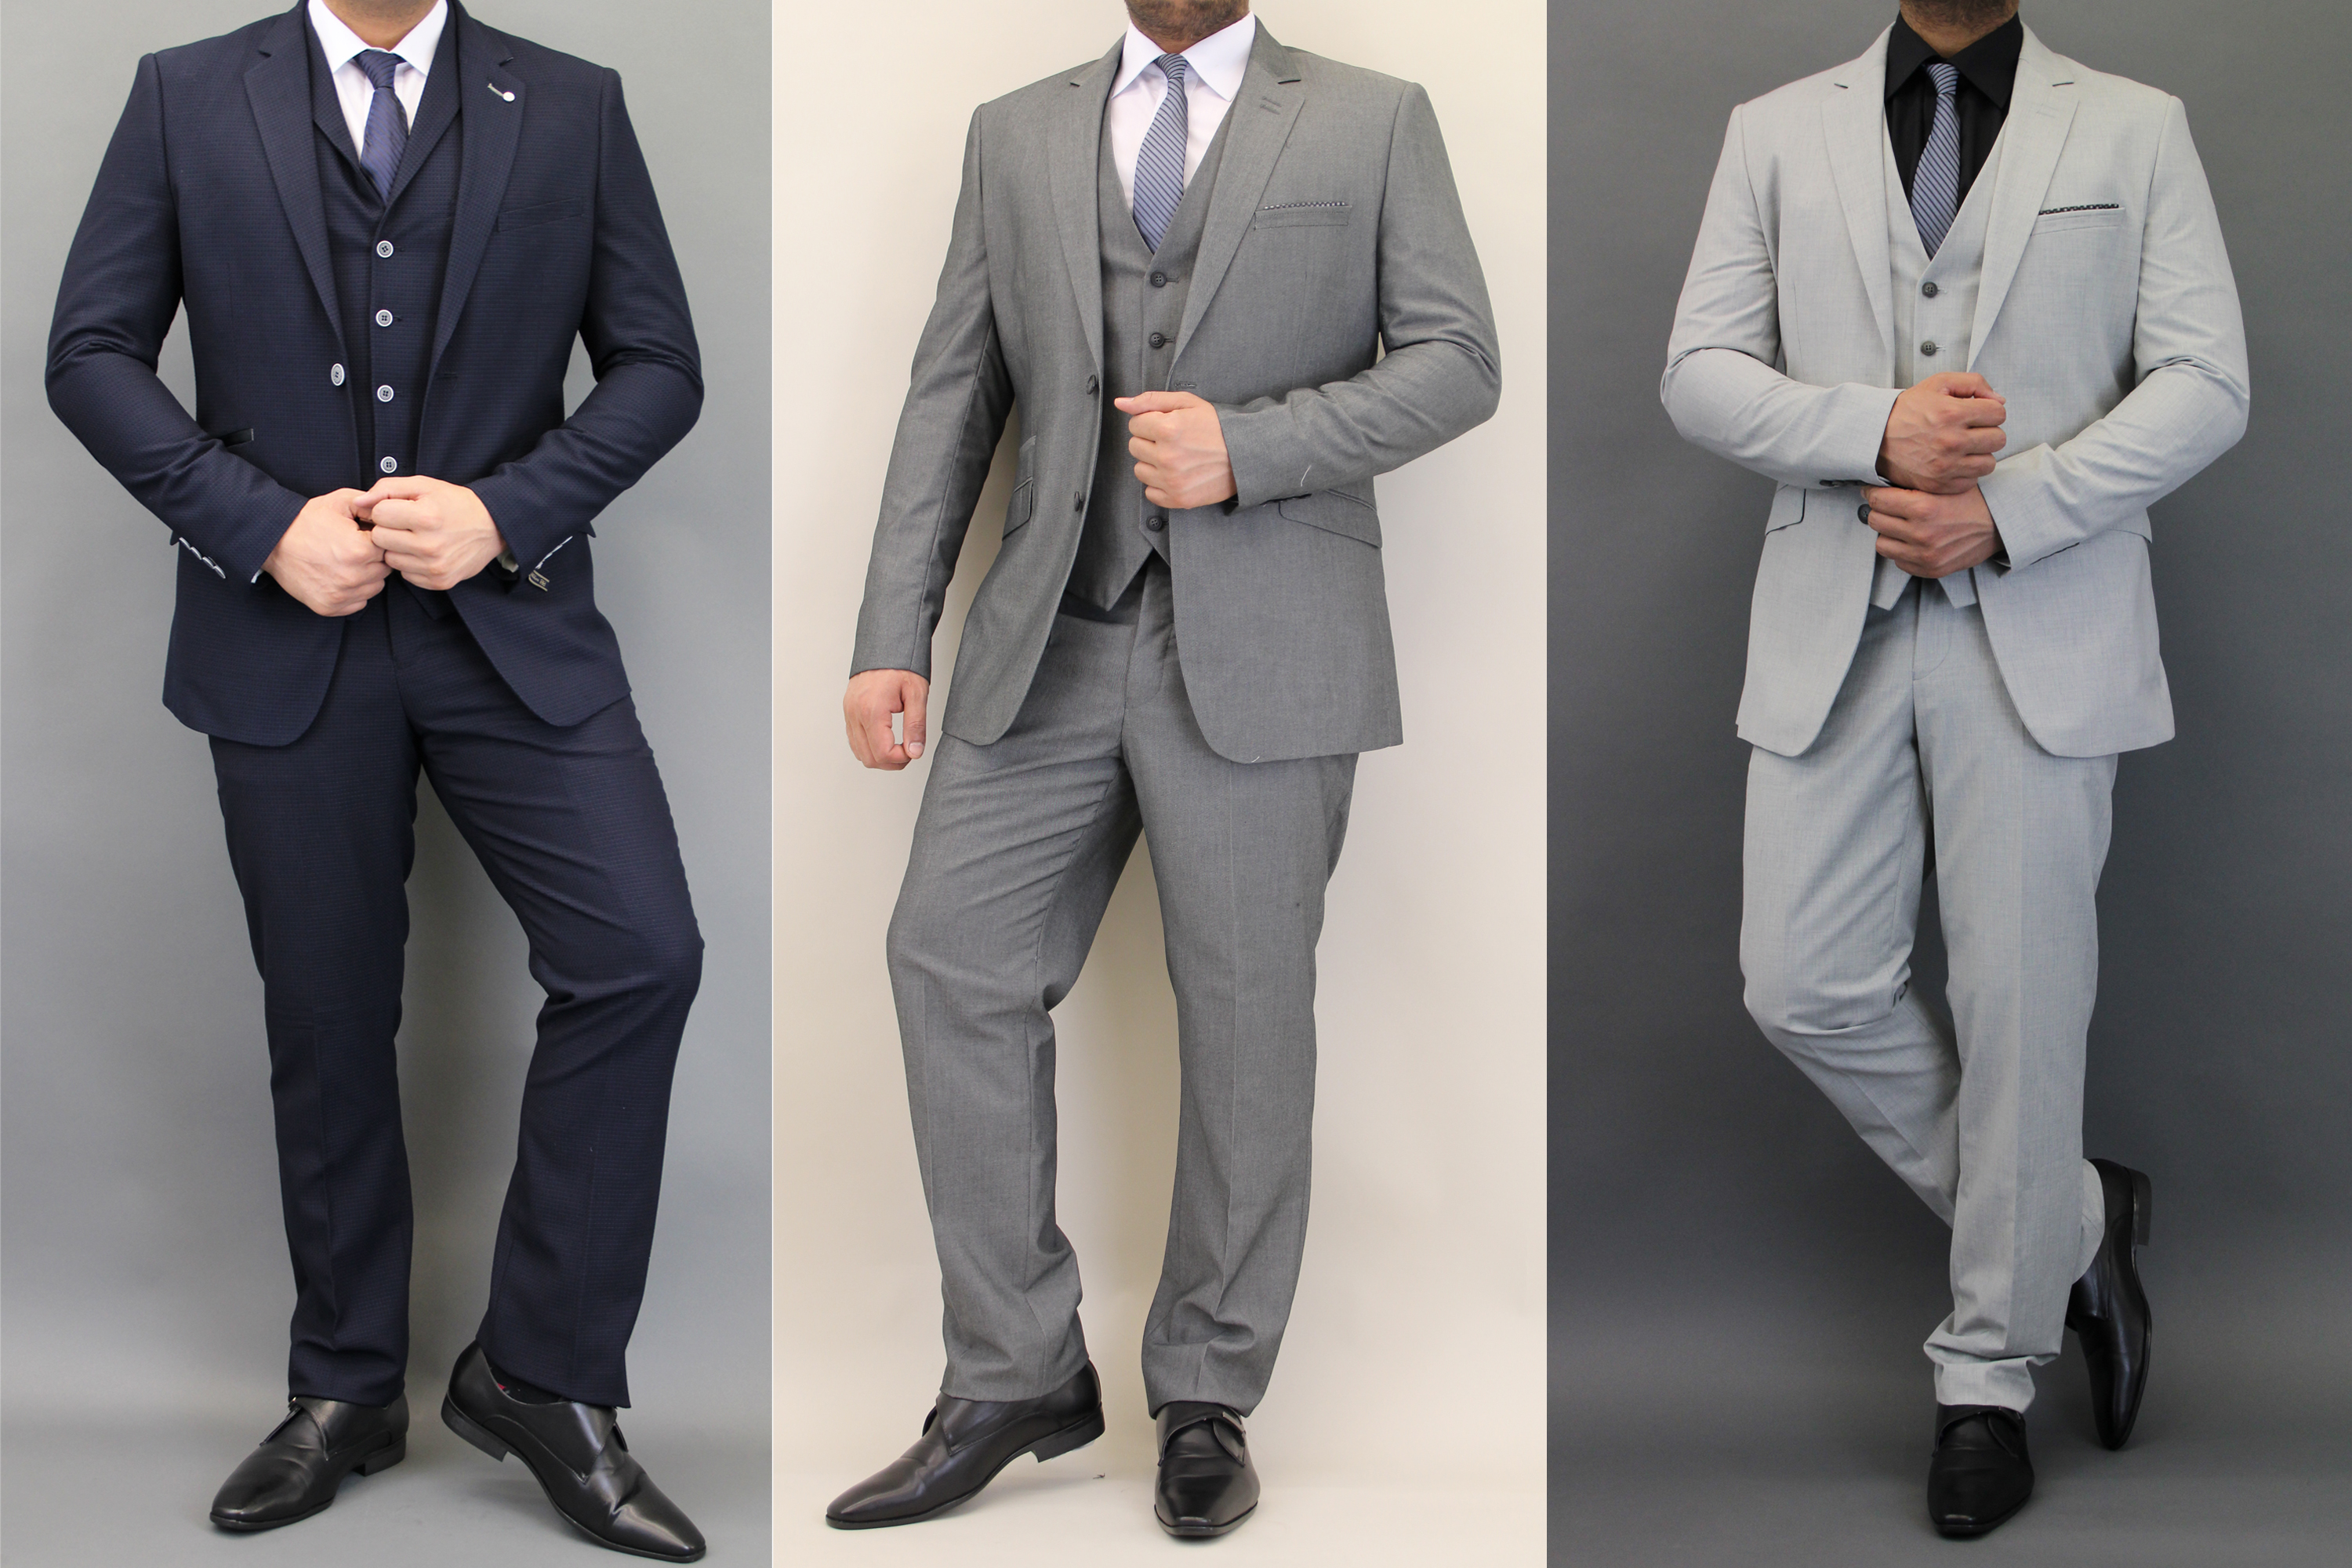 Free 2-day shipping on qualified orders over $ Buy Men's Not So Suit Suit 3 Piece Suit, up to size 2XL at ketauan.ga5/5(1).